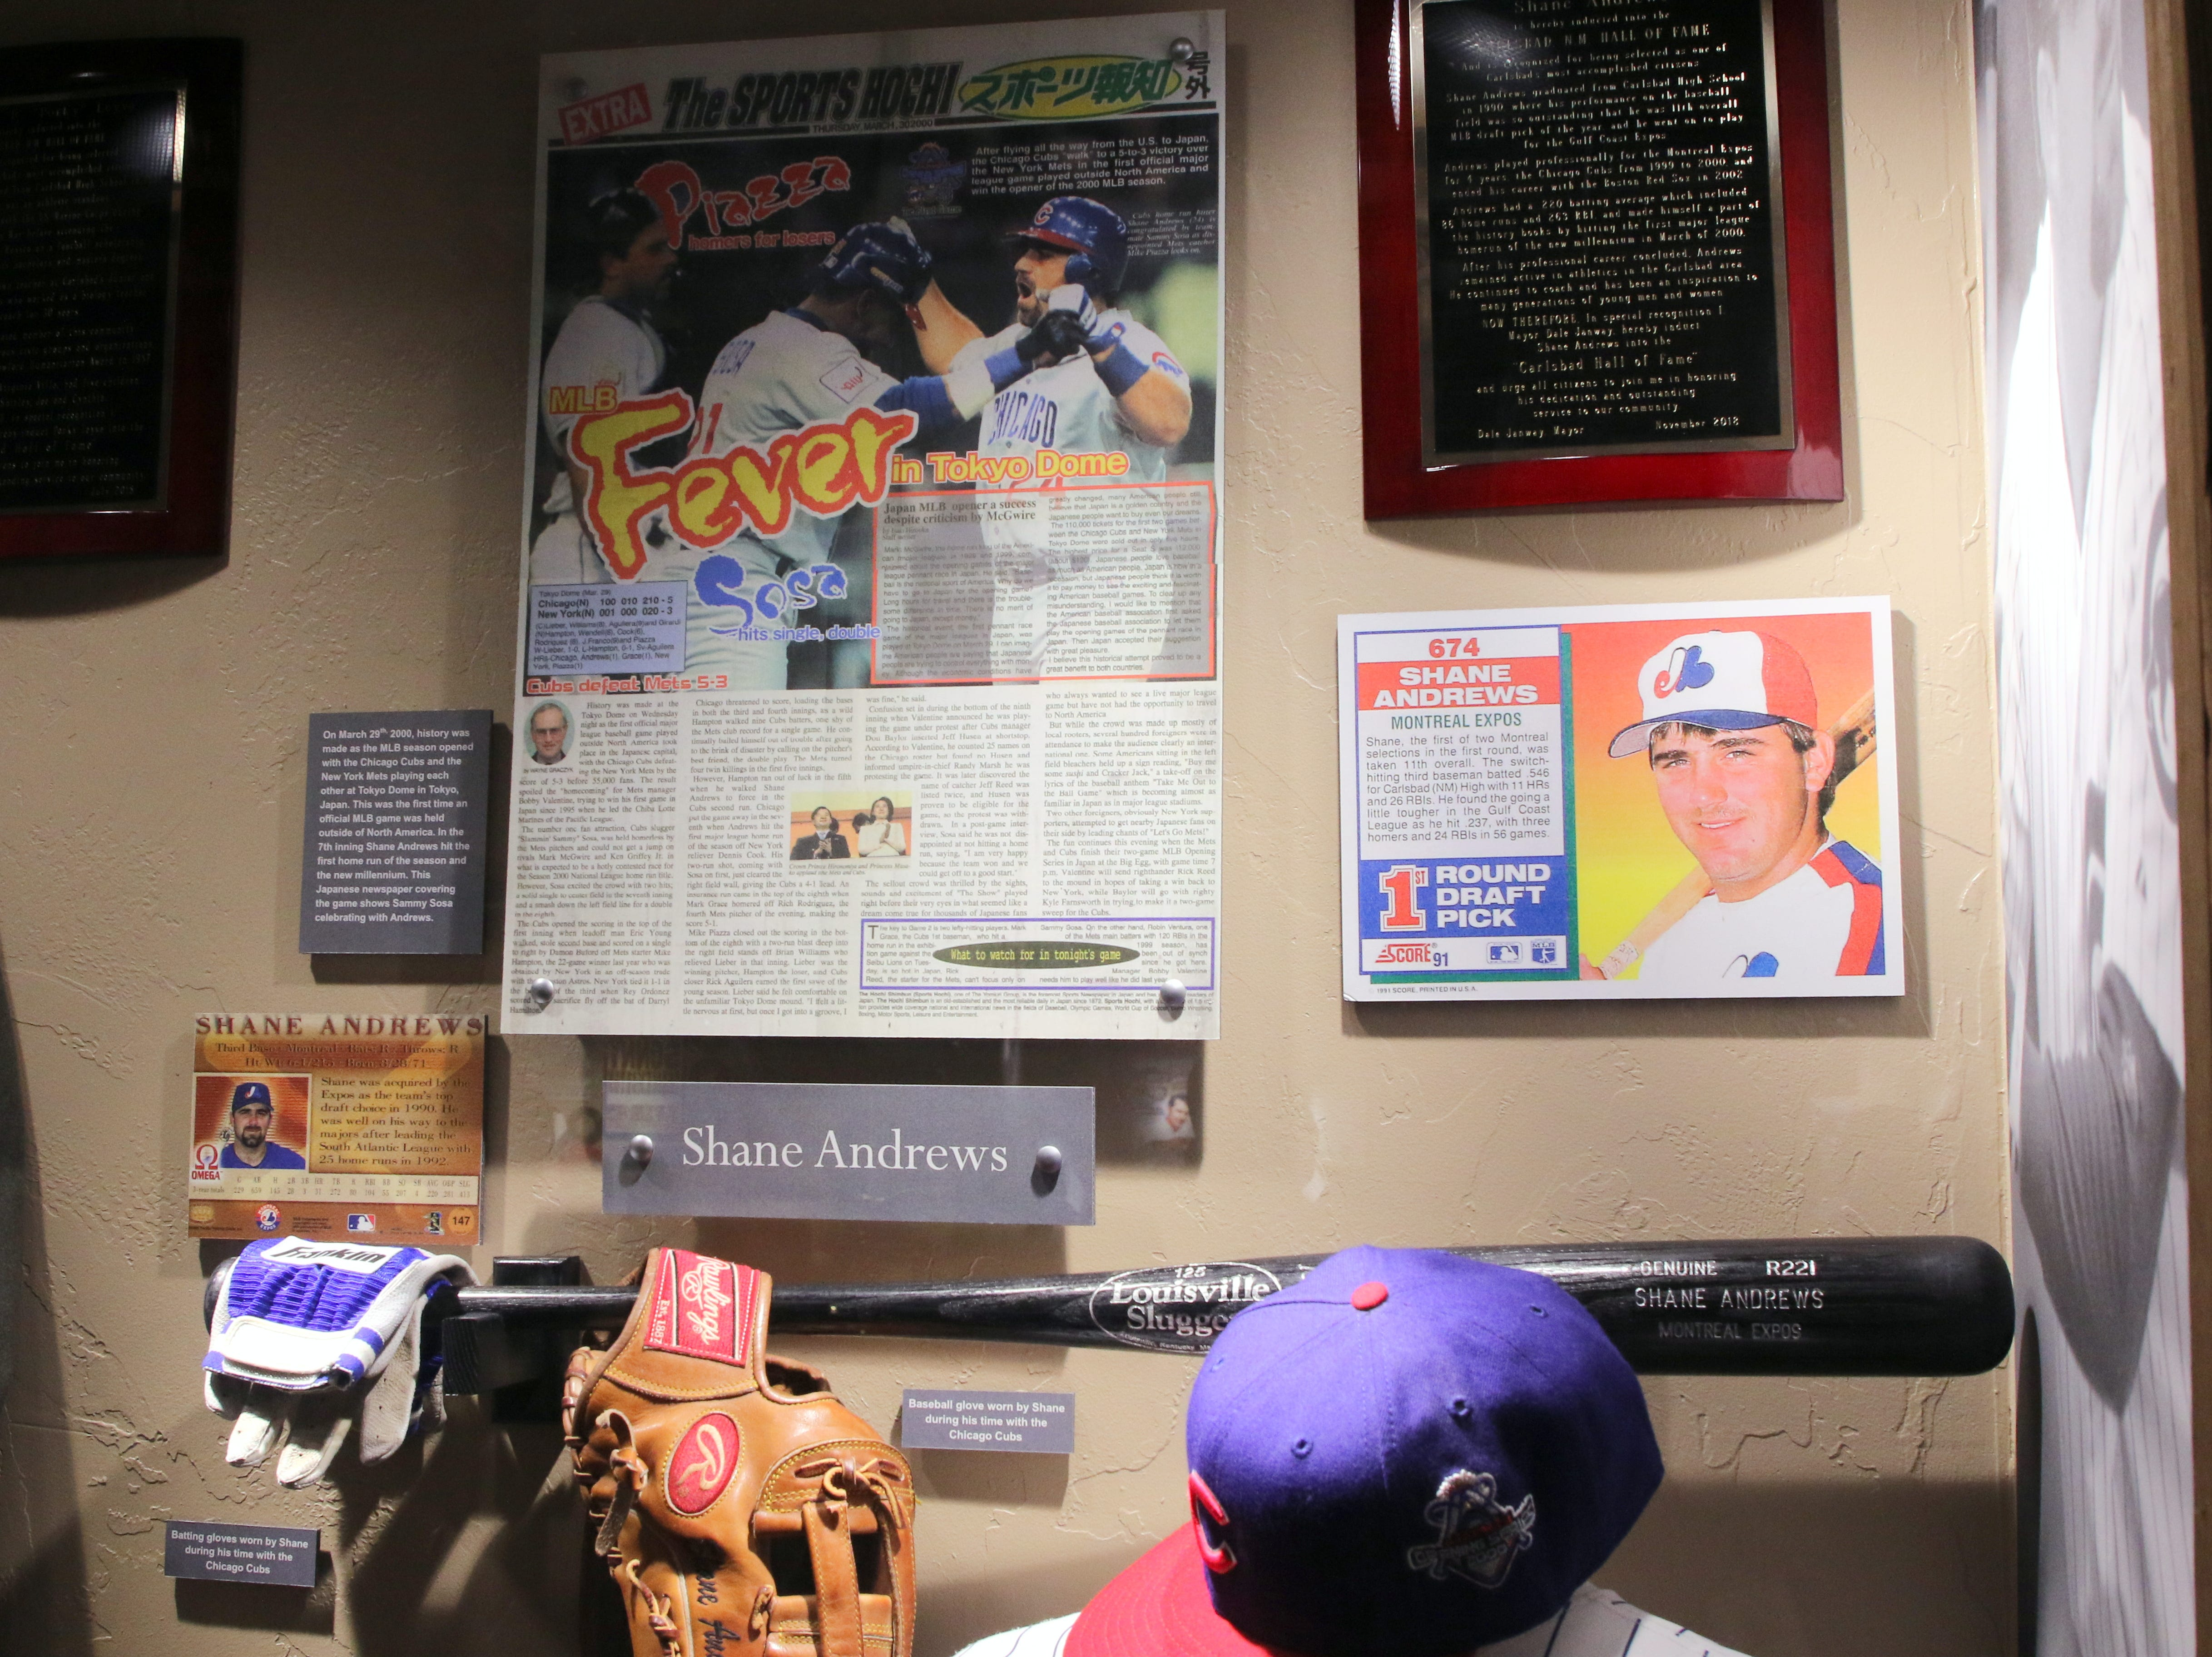 Shane Andrews memorabilia during Friday's Carlsbad Hall of Fame Induction.